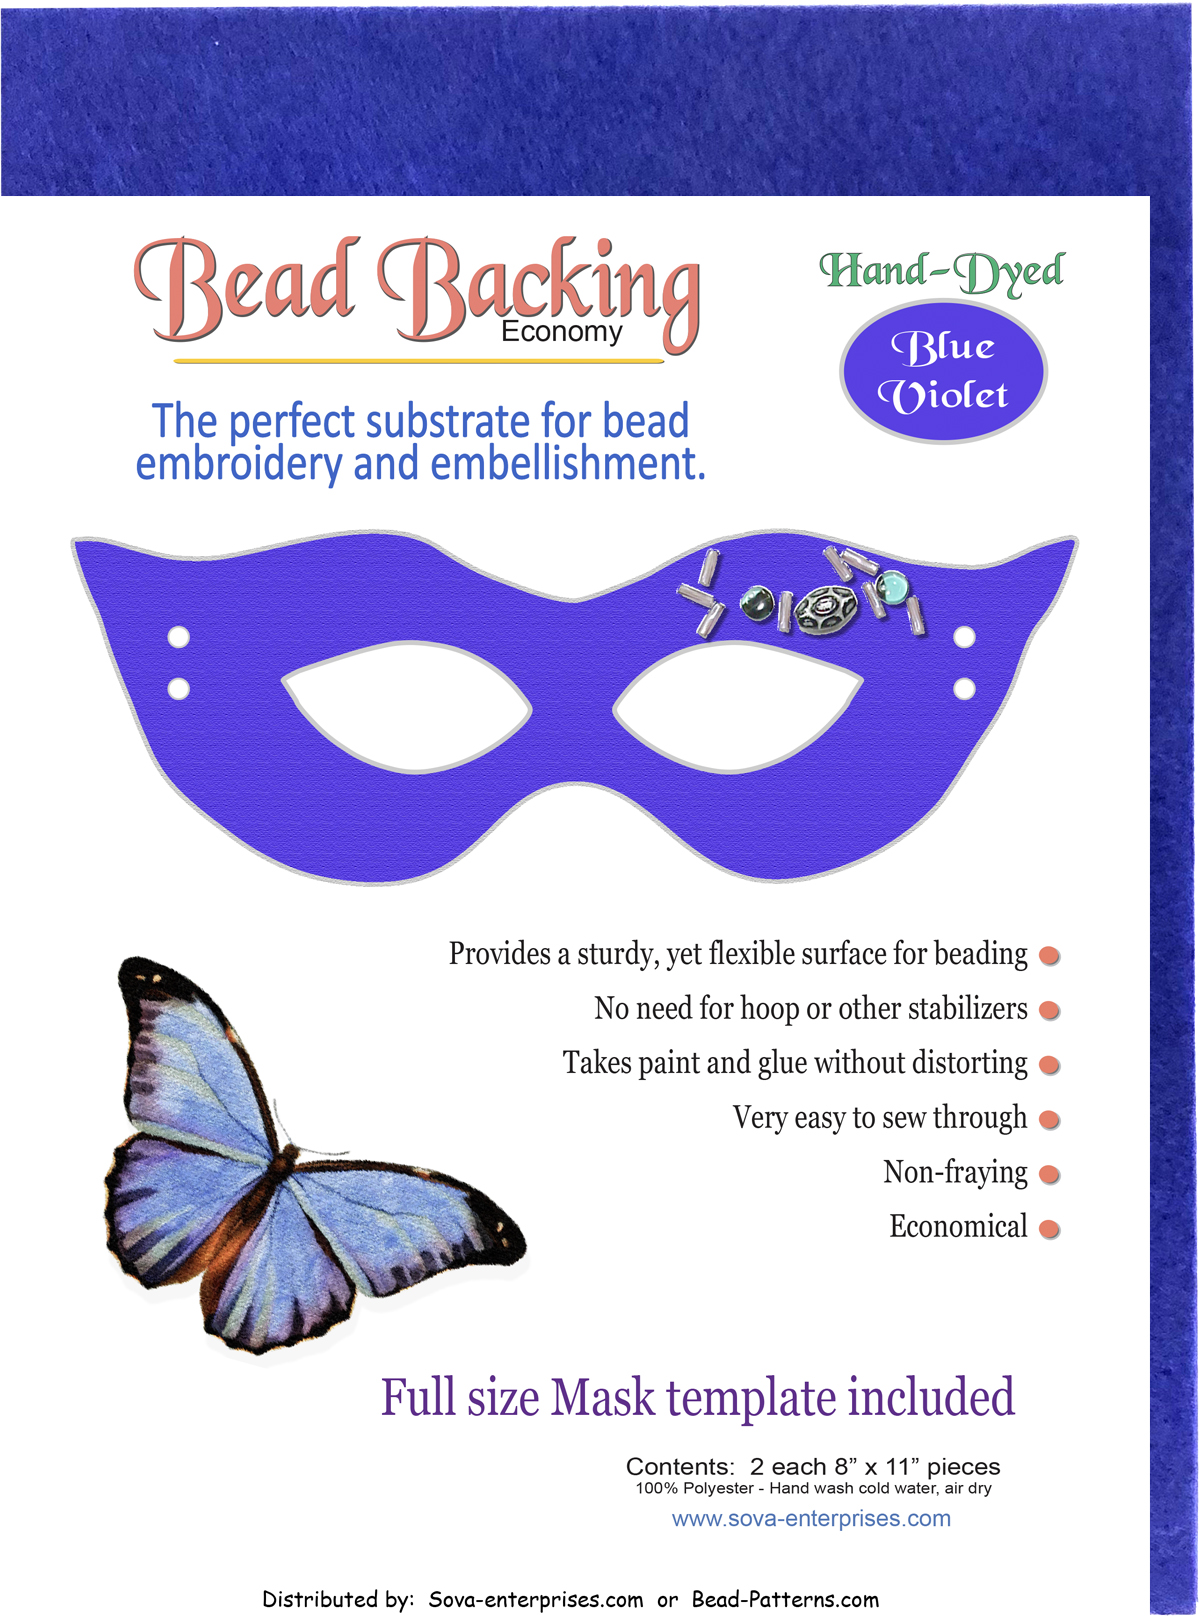 "Bead Backing Economy Foundation 8"" x 11"" Blue Violet (2)"